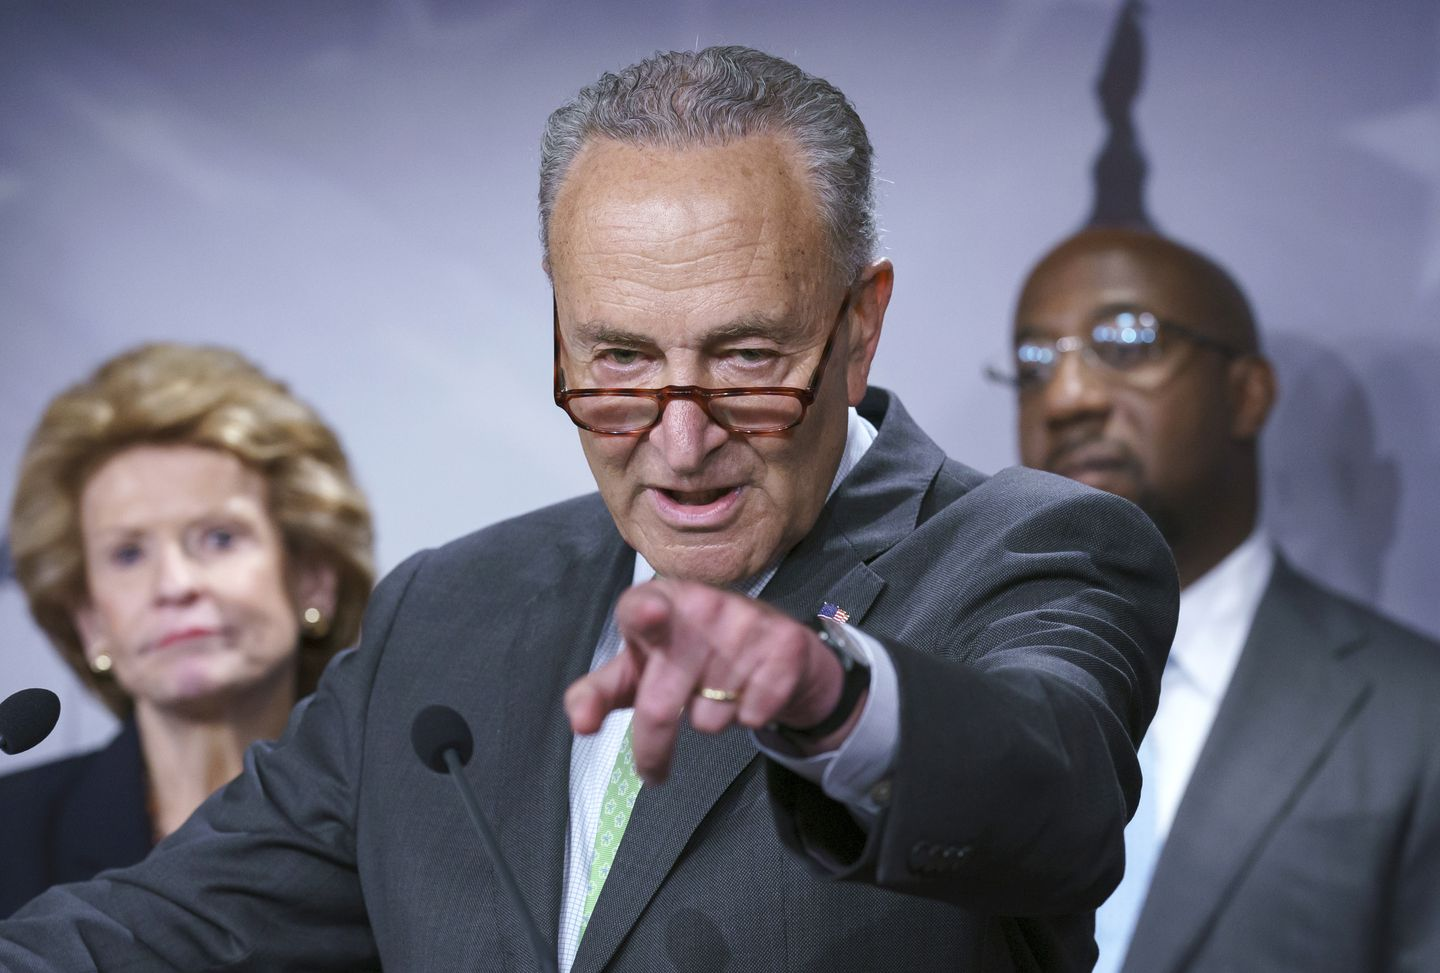 Schumer pressures Dems to wrap up infrastructure, reconciliation before August recess